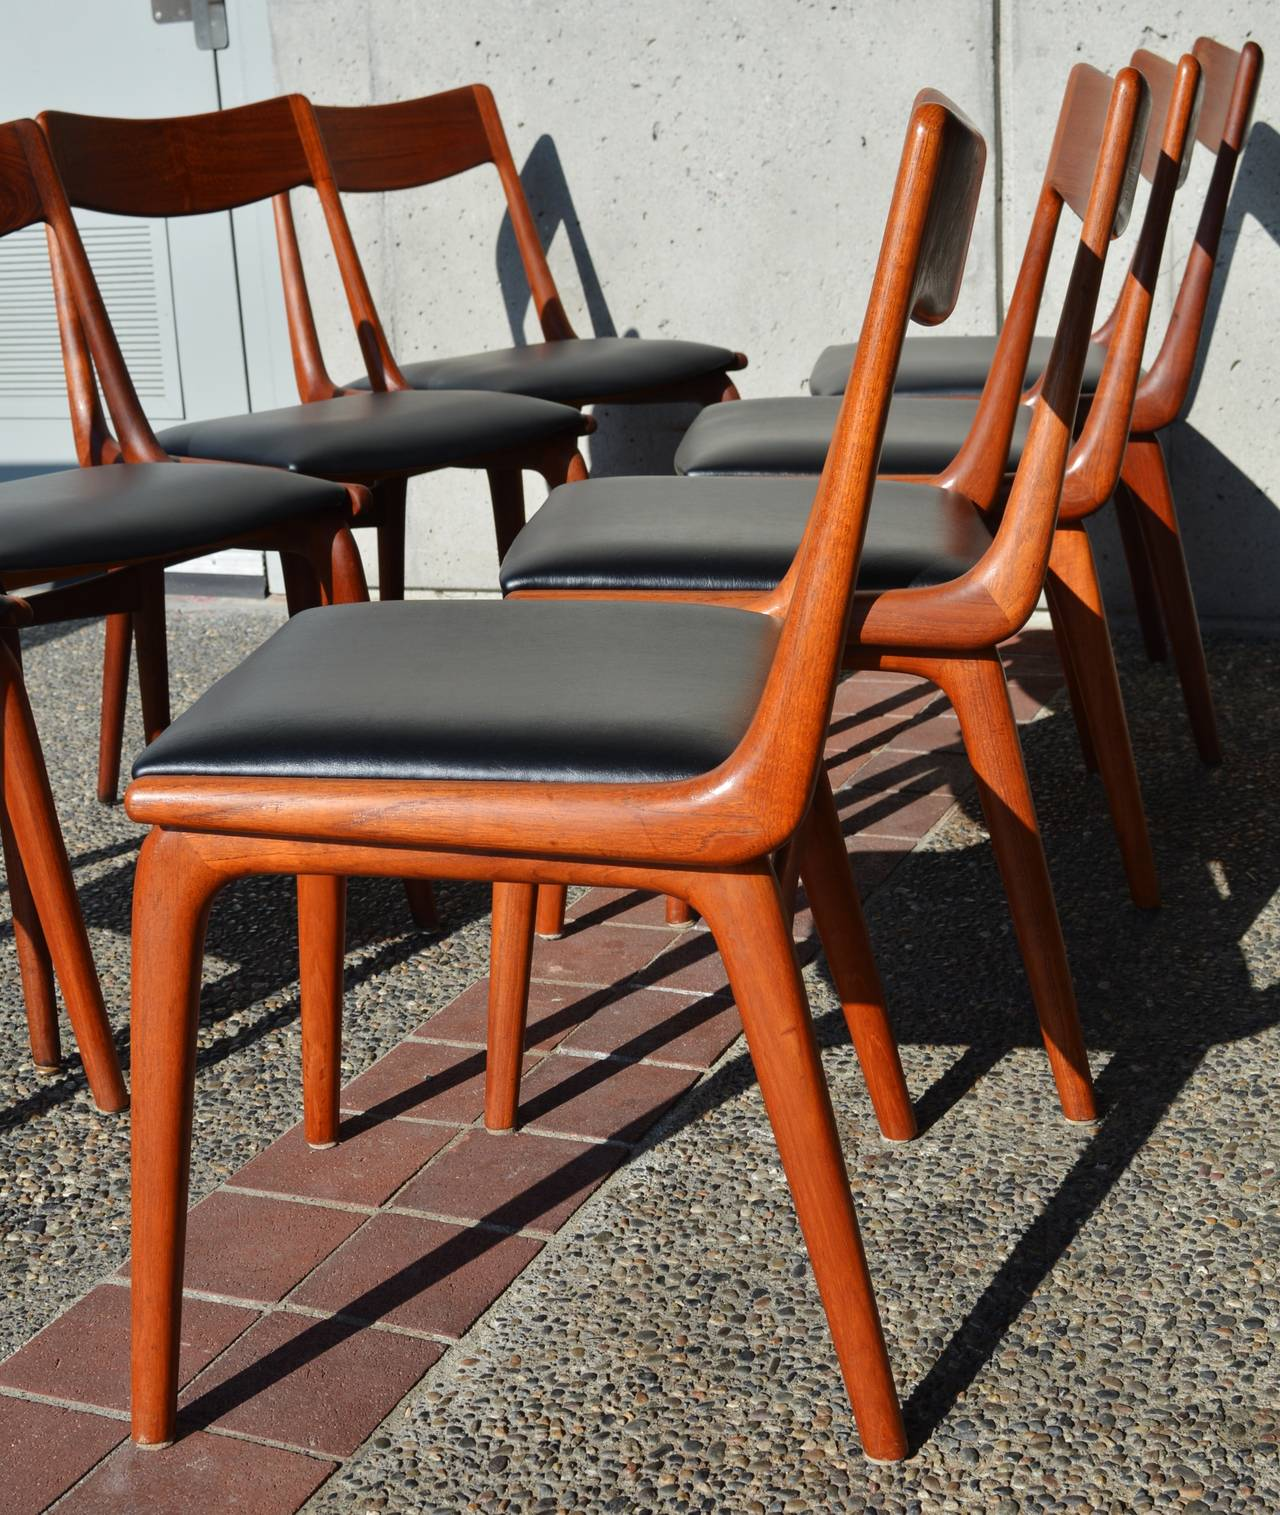 Merveilleux This Is An Amazingly Rare Set Of The Ever Popular Danish Modern Teak